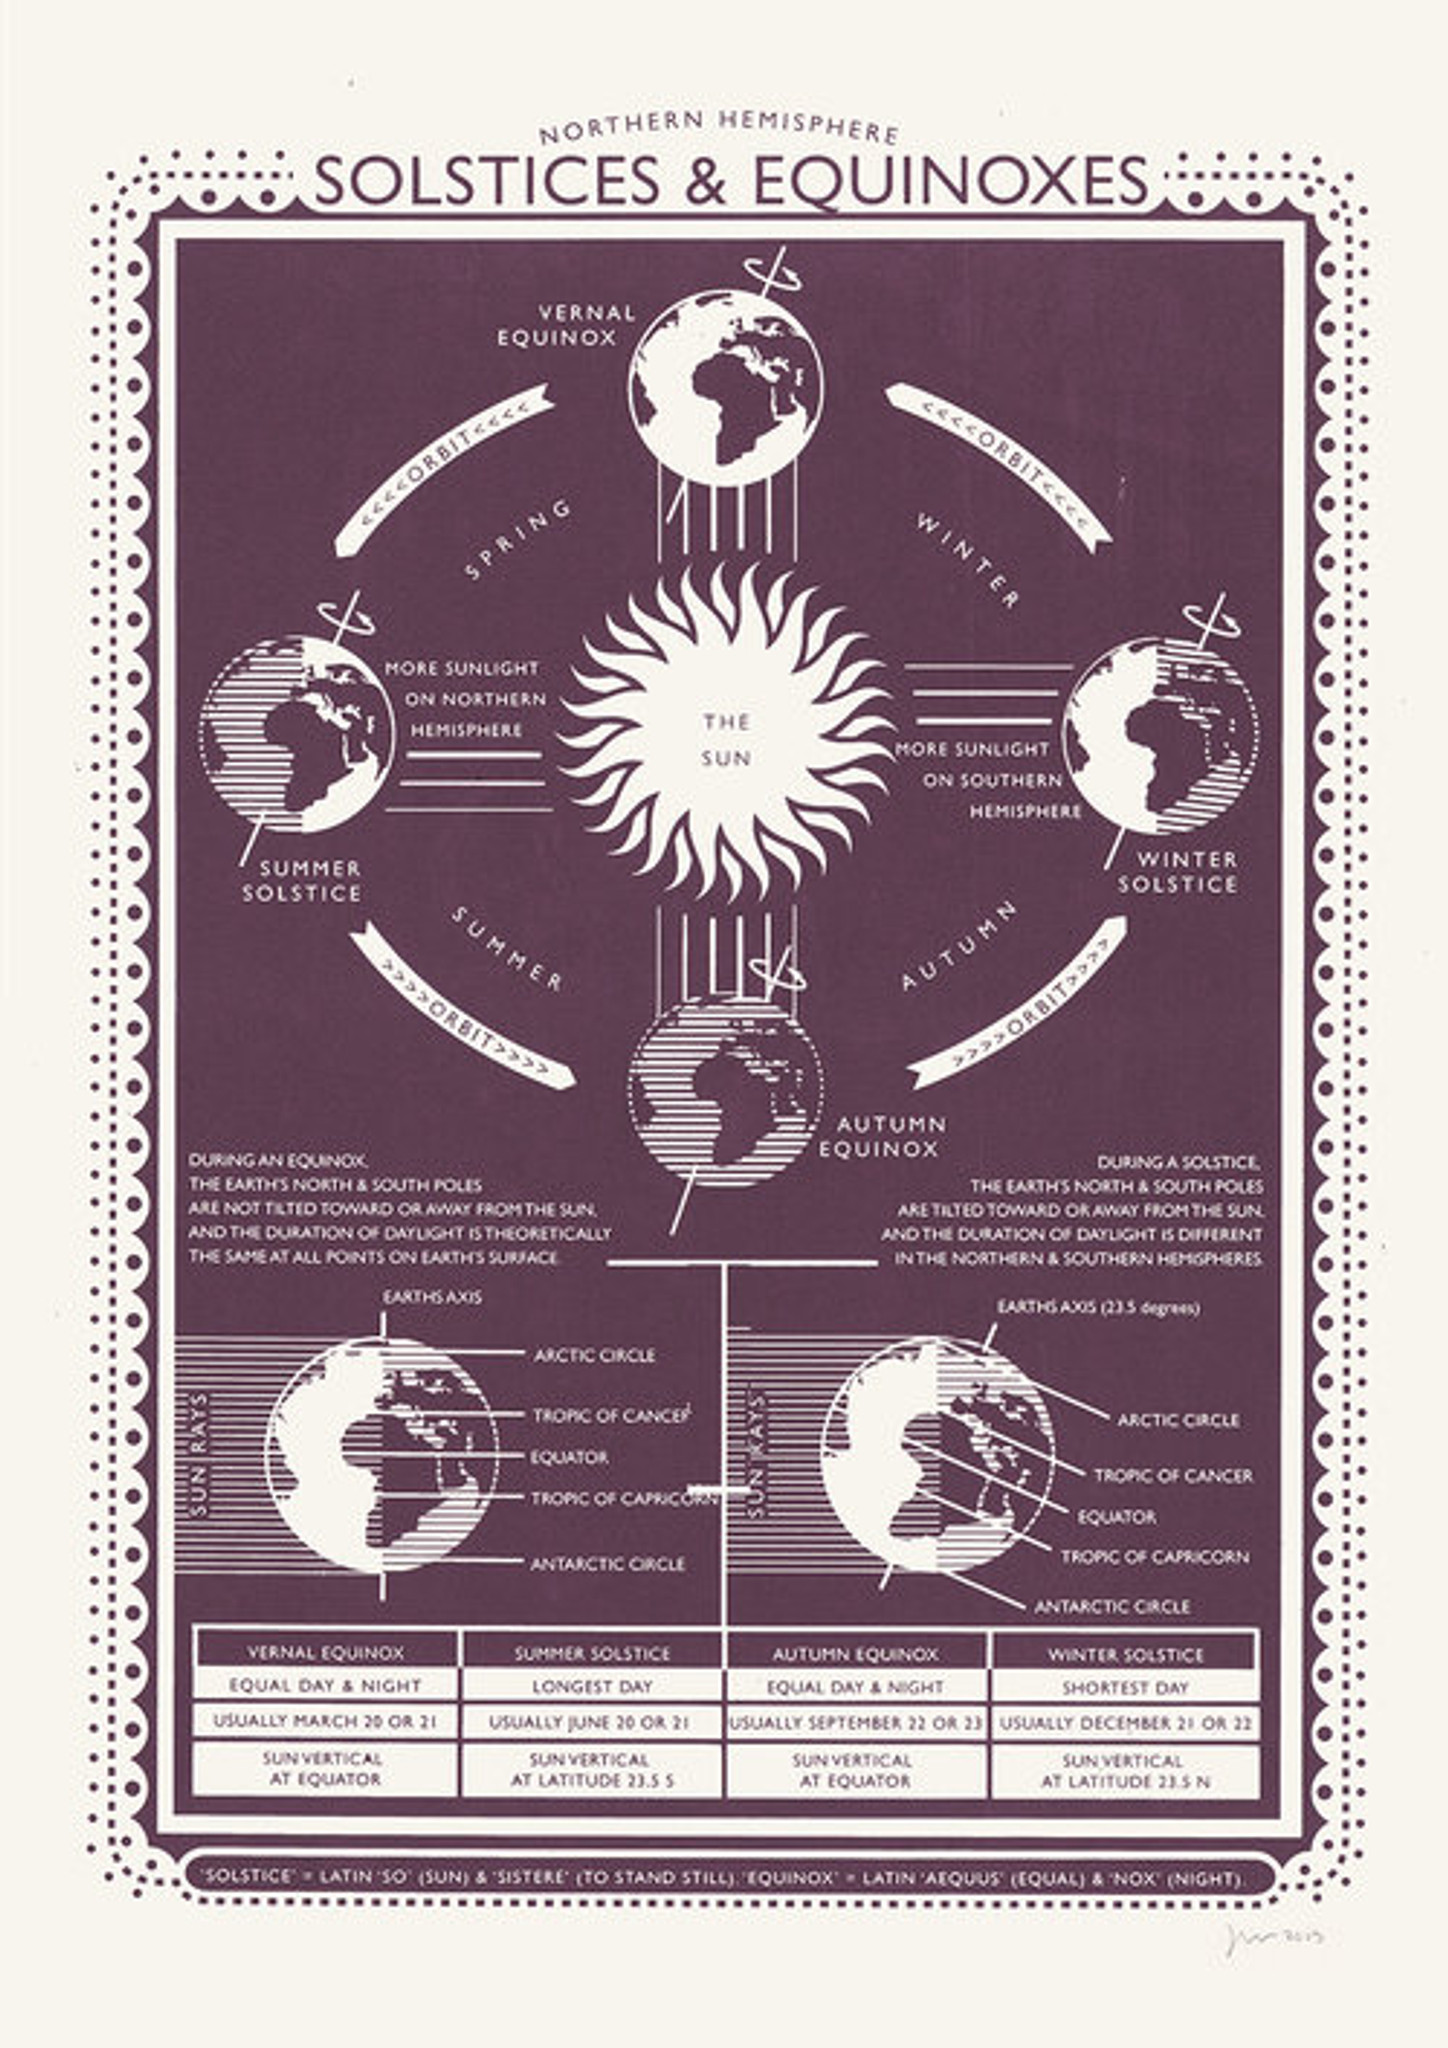 Solstices and Equinoxes